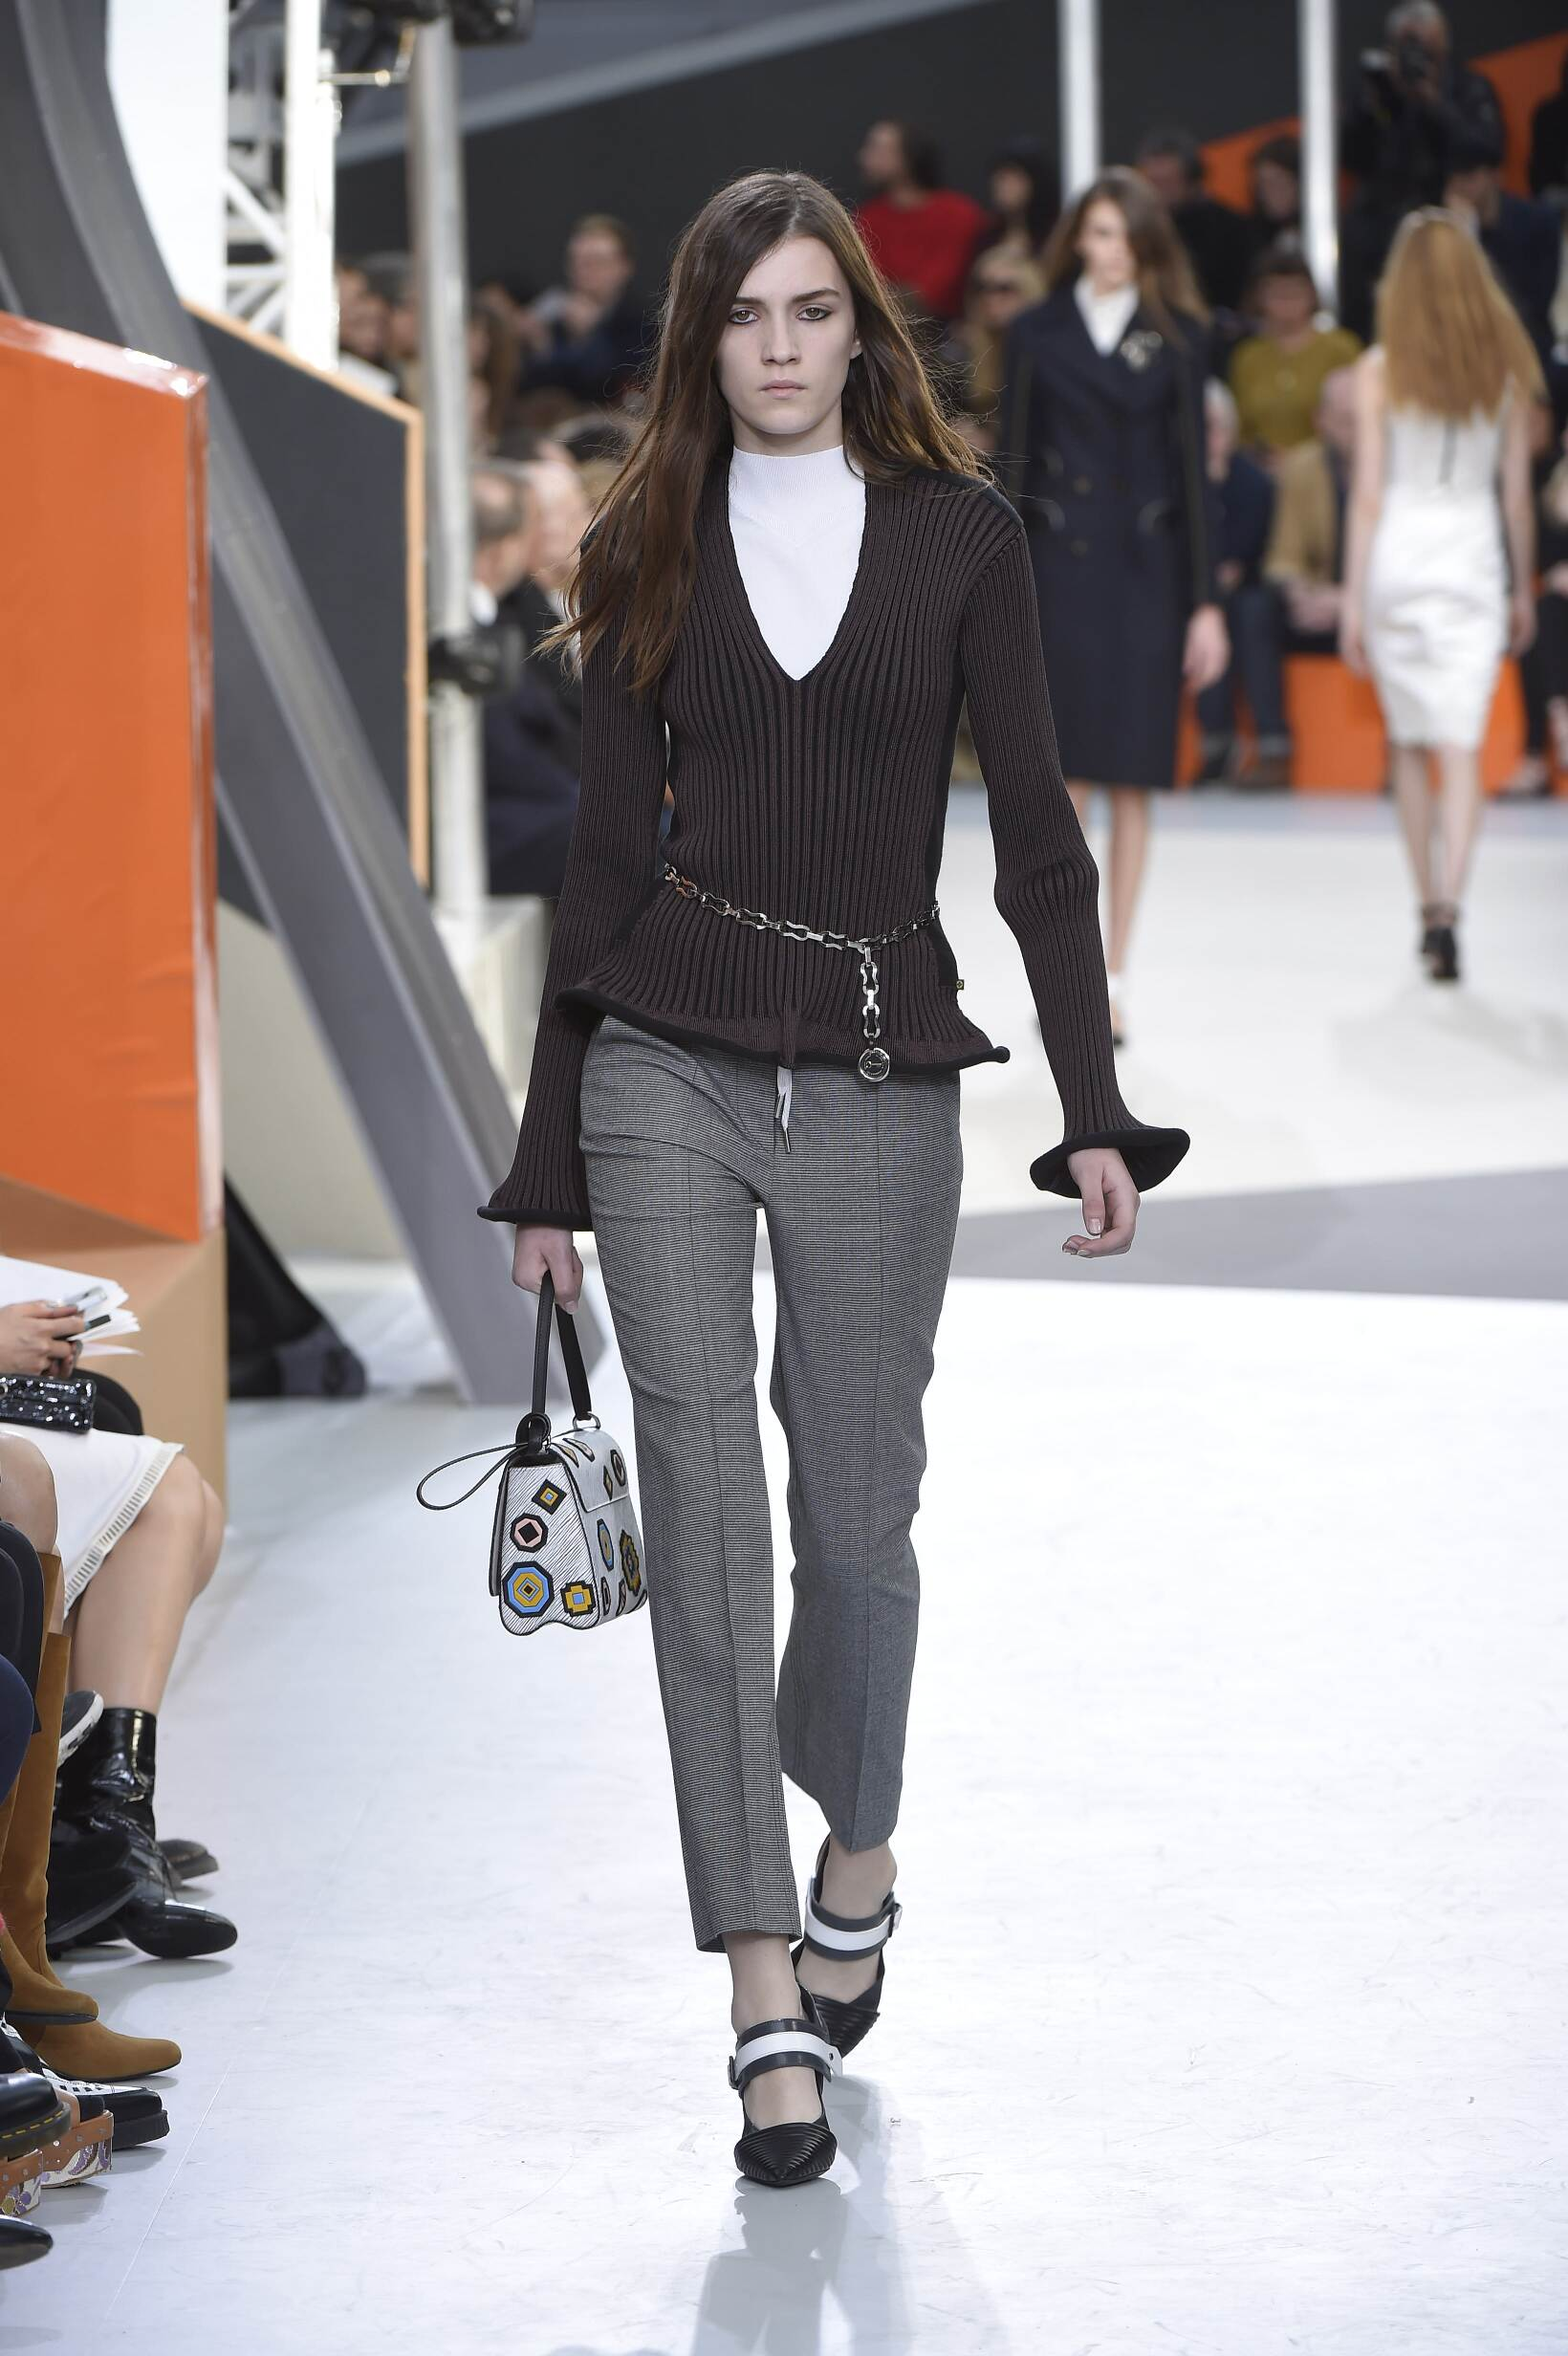 Louis Vuitton Women's Collection 2015 2016